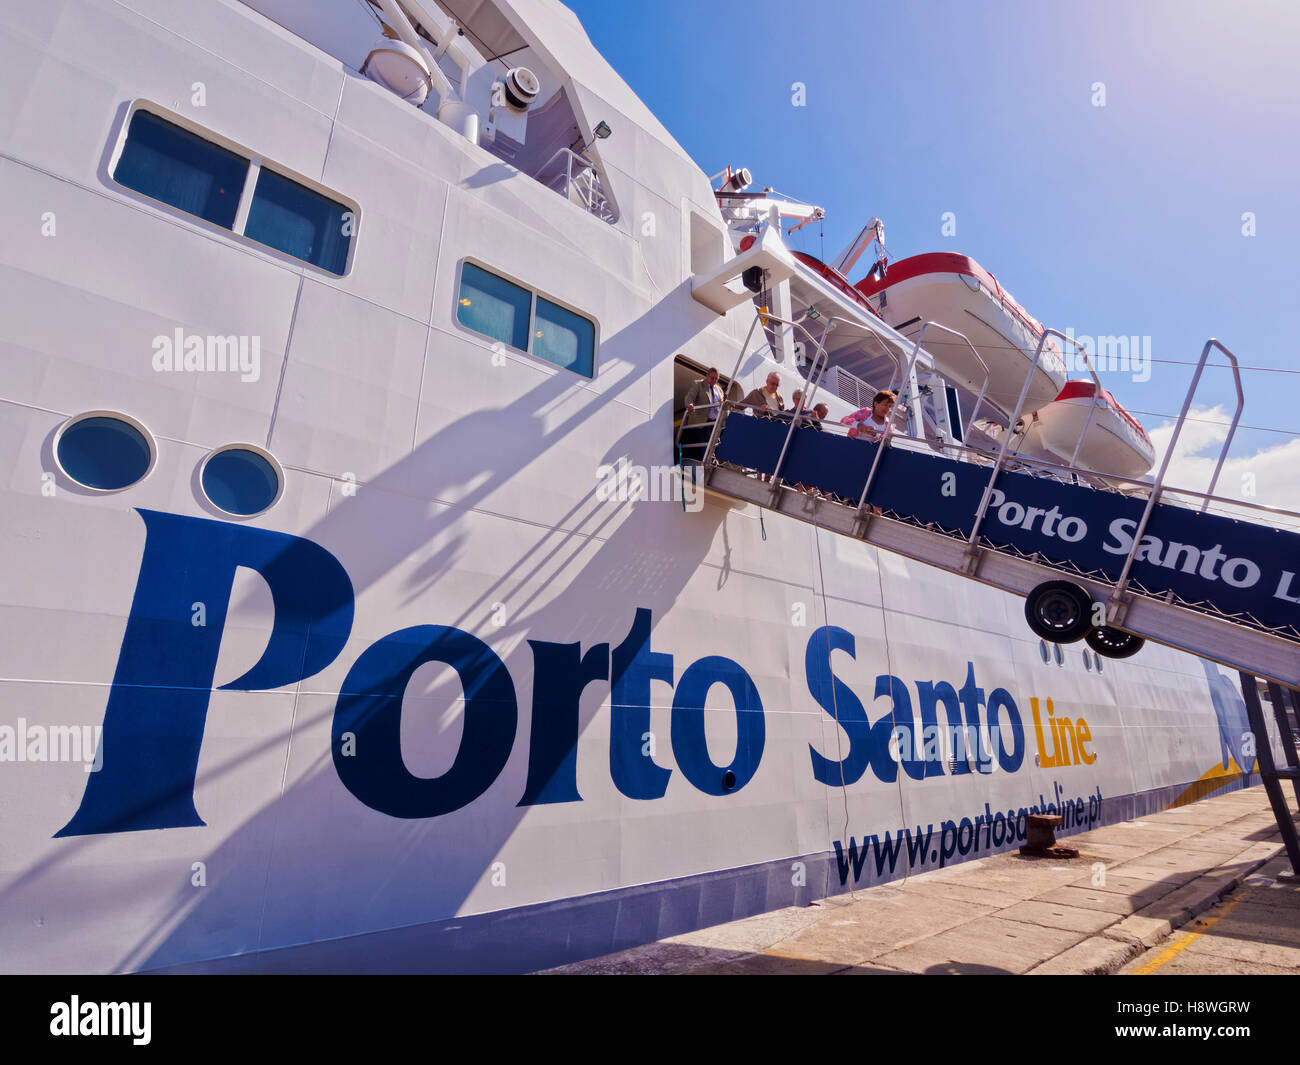 Portugal, Madeira Islands, Porto Santo, View of the Porto Santo Line Ferry in the Porto de Abrigo. - Stock Image